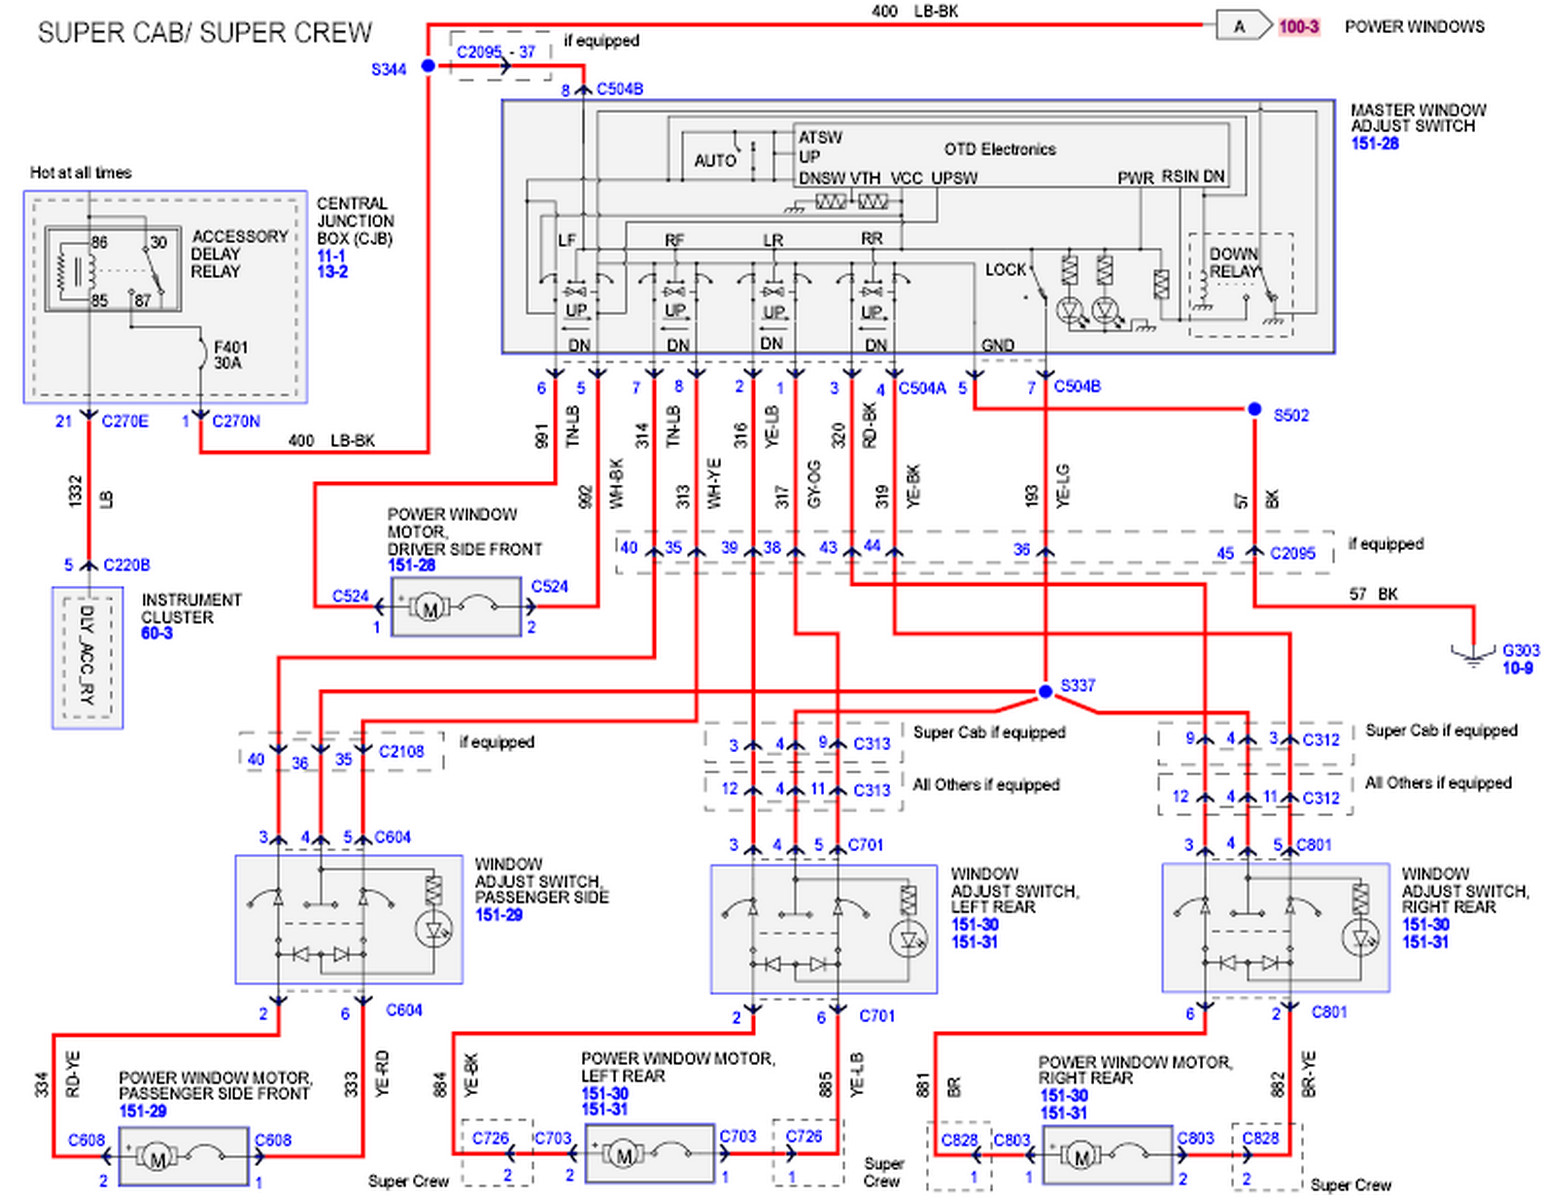 [DIAGRAM_38EU]  JOE THE AUTO GUY: 2004-2008 ford F-150 rear power windows inoperative | 2016 Ford F 150 Wiring Harness Diagram |  | JOE THE AUTO GUY - blogger